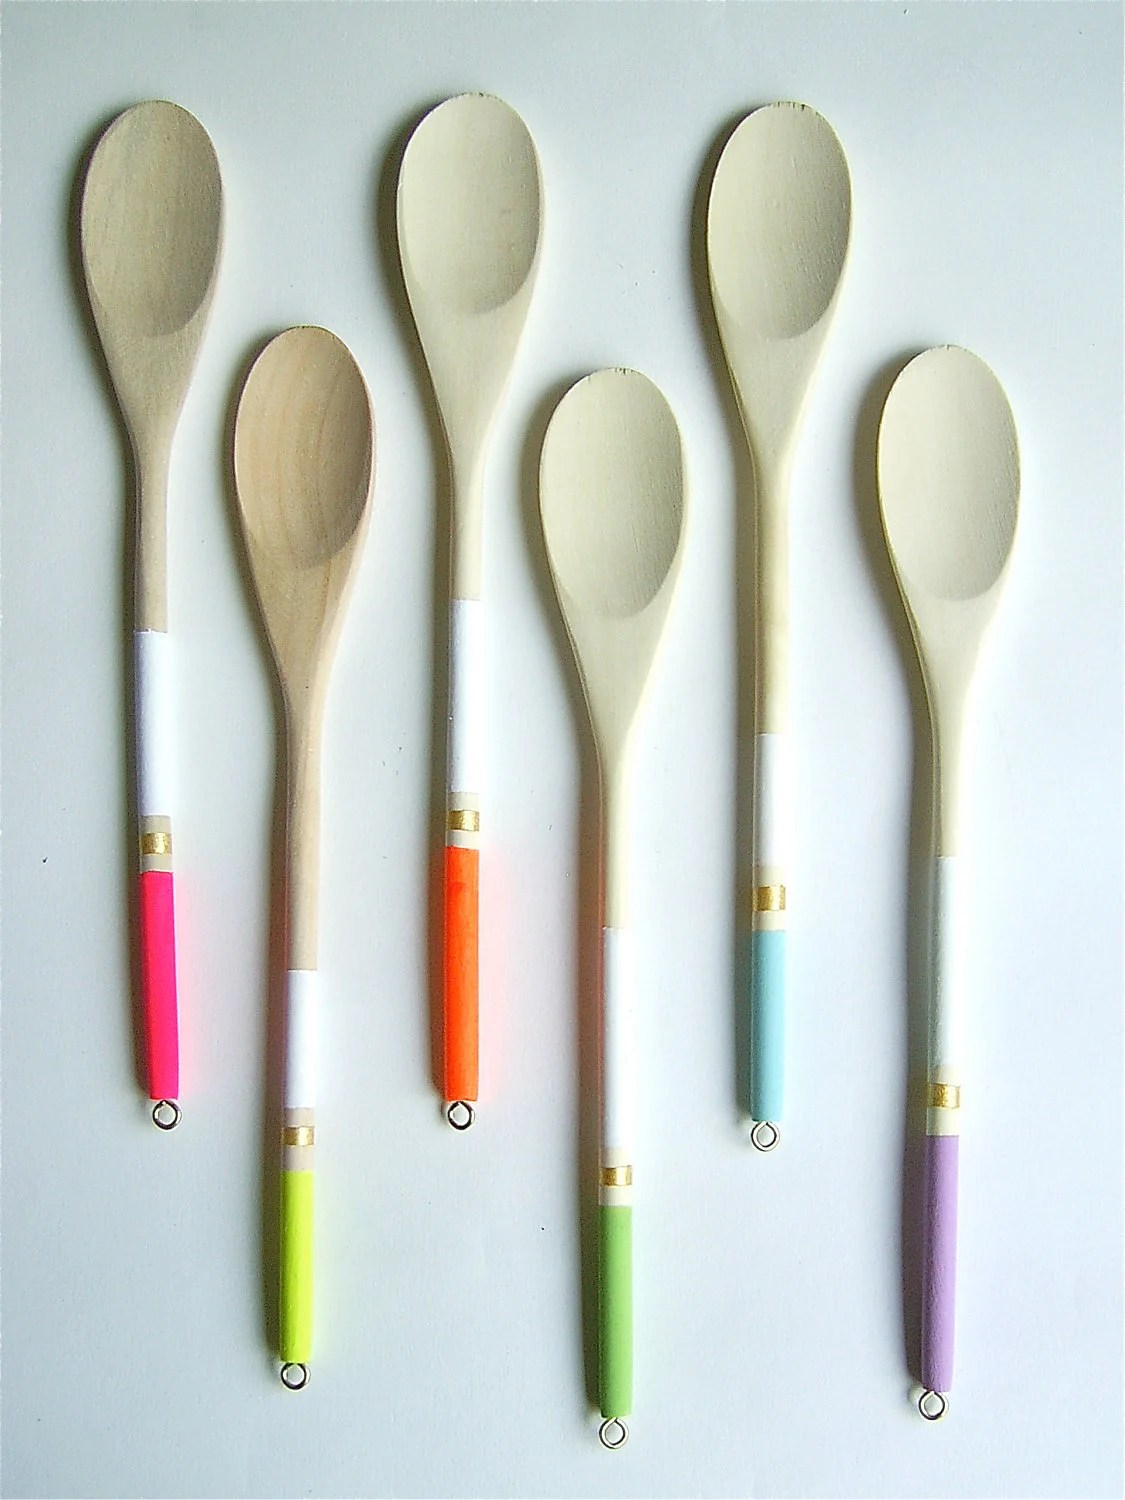 Modern Neon Hardwood Serving Spoons, Set of 6